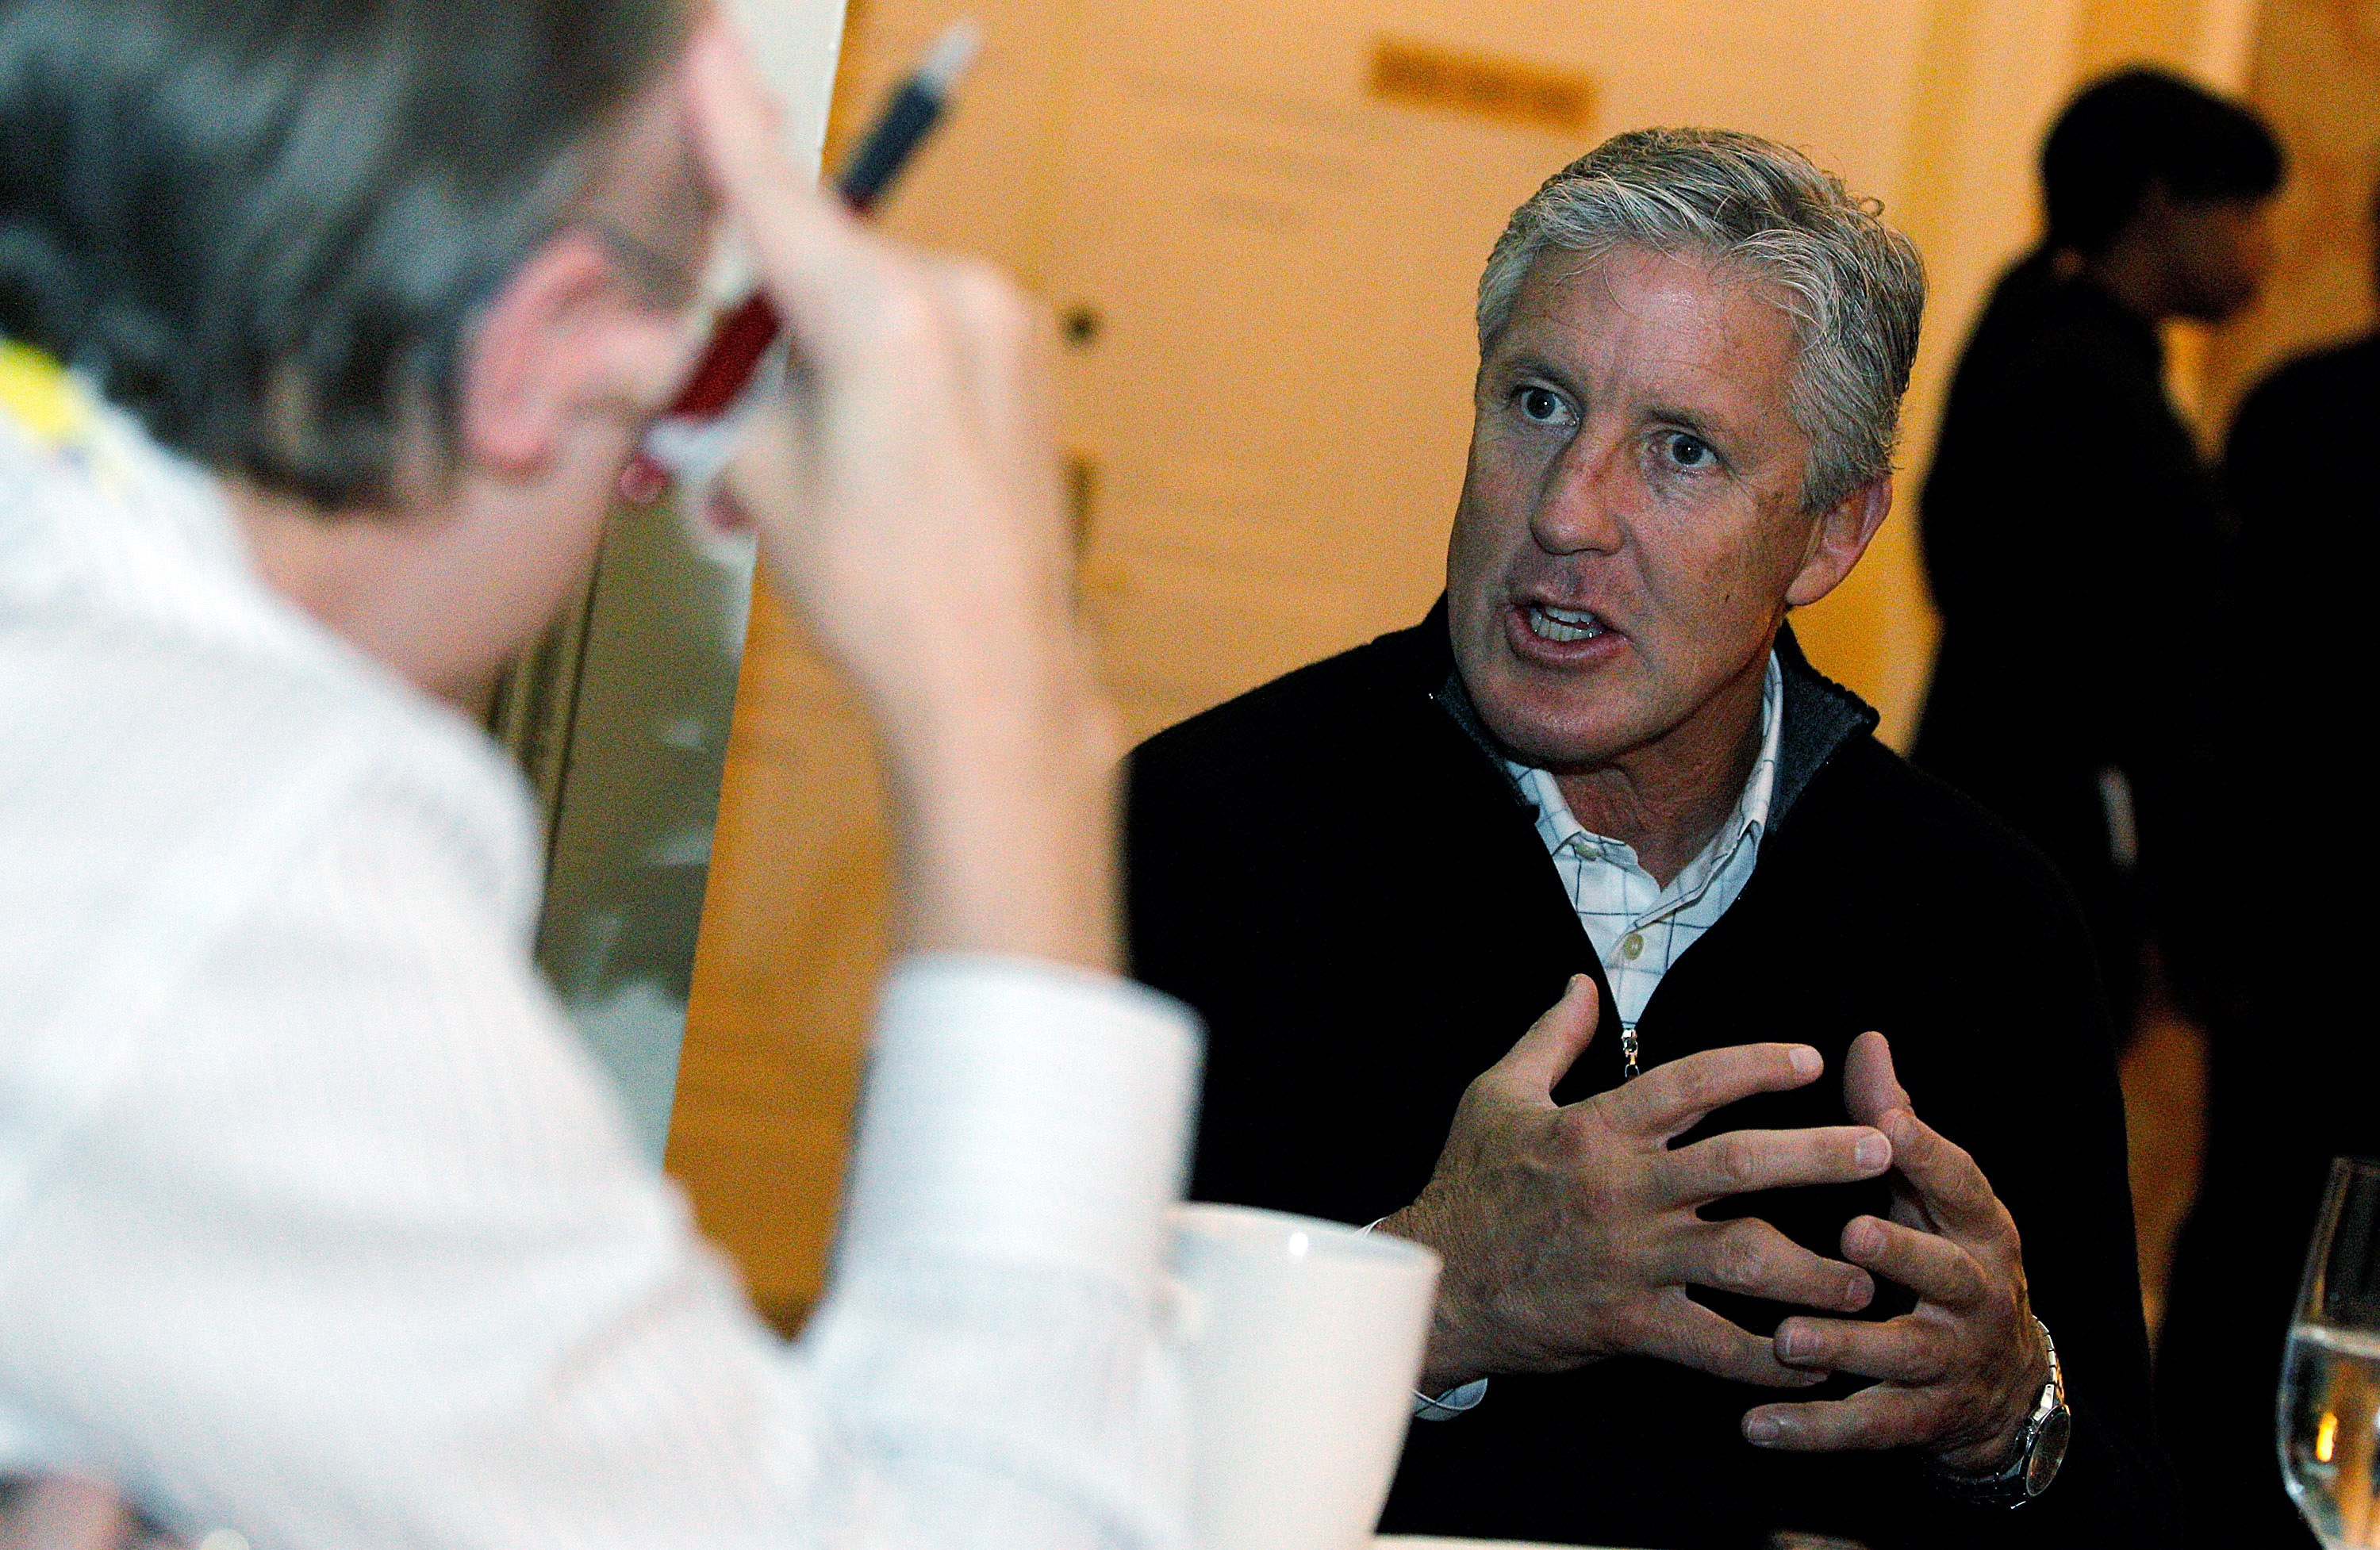 NEW ORLEANS, LA - MARCH 22:  Seattle Seahawks head coach Pete Carroll answers questions from the media during the NFL Annual Meetings at the Roosevelt Hotel on March 22, 2011 in New Orleans, Louisiana. Despite a NFL owners imposed lockout in effect since